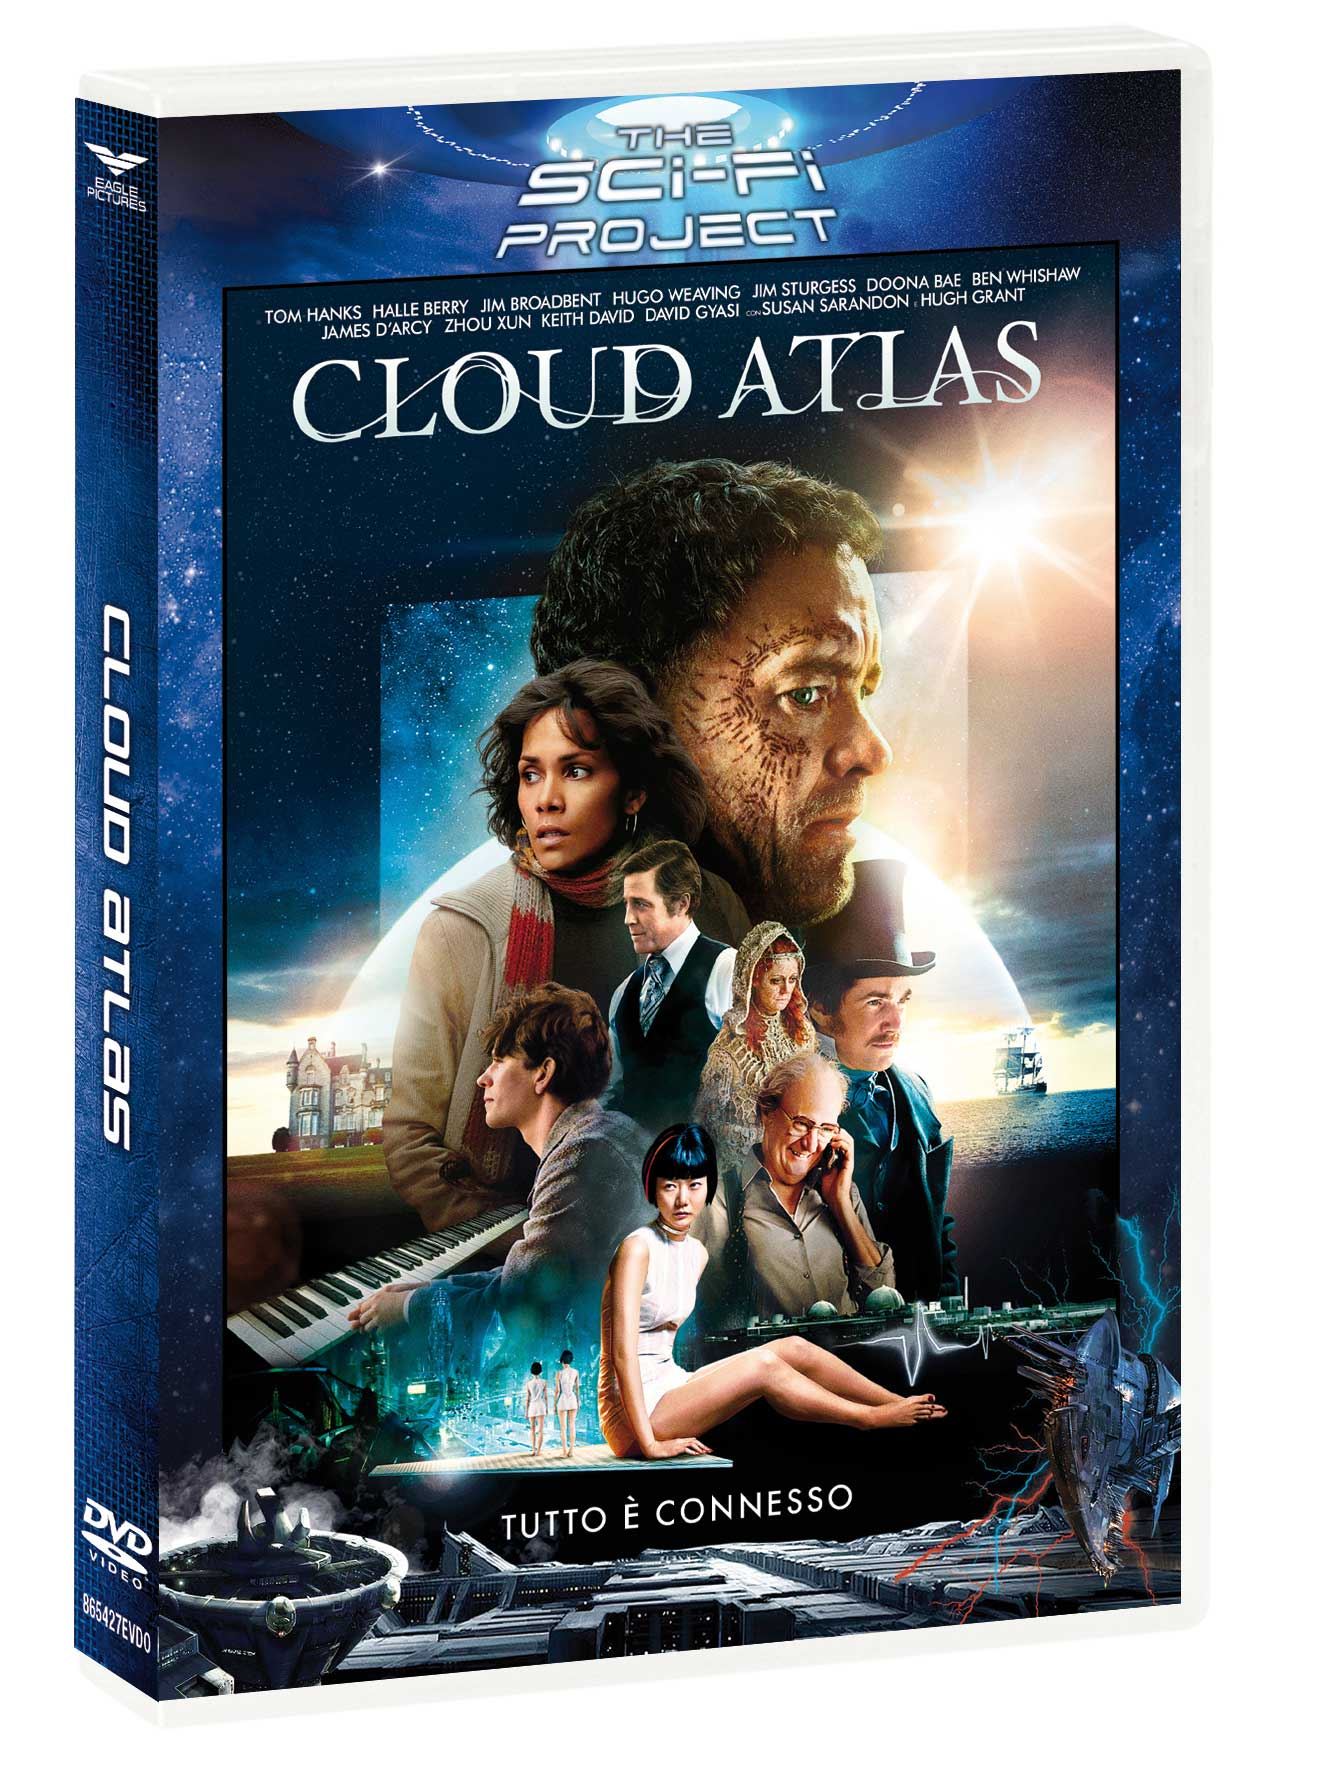 CLOUD ATLAS (SCI-FI PROJECT) (DVD)